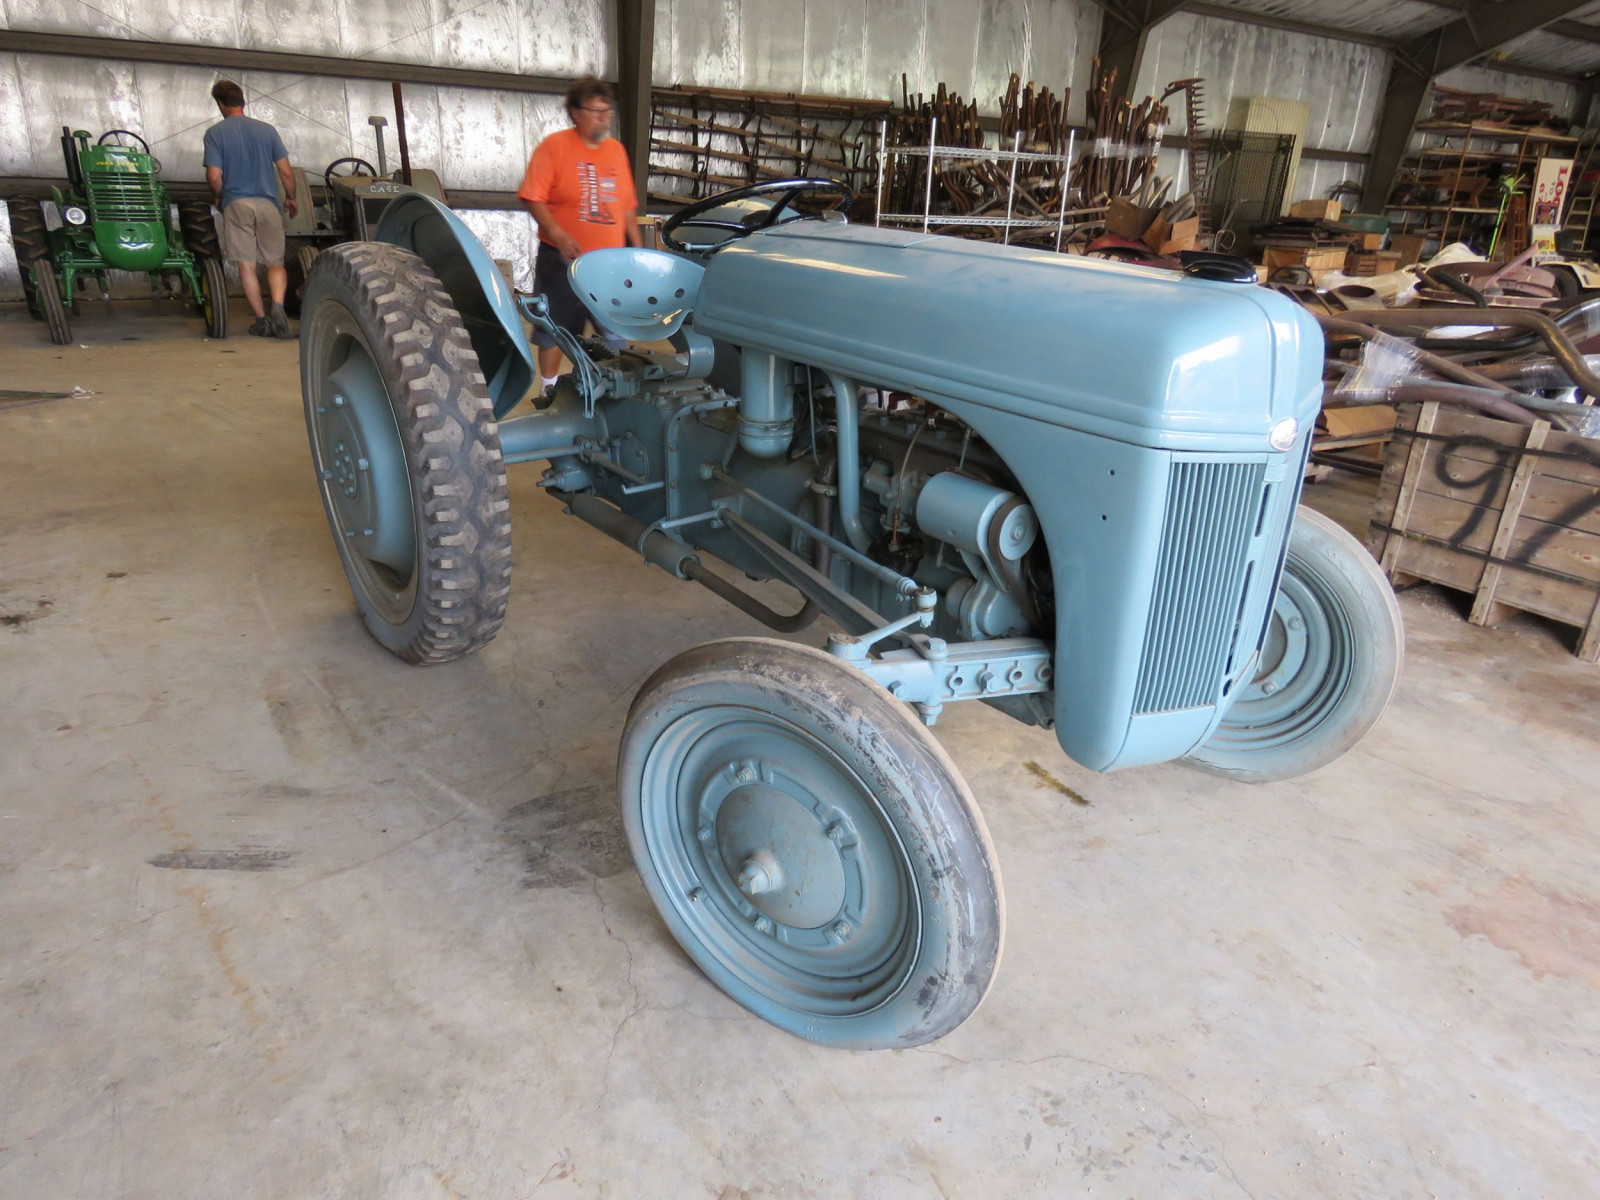 1940 Ford 9N Tractor - Image 3